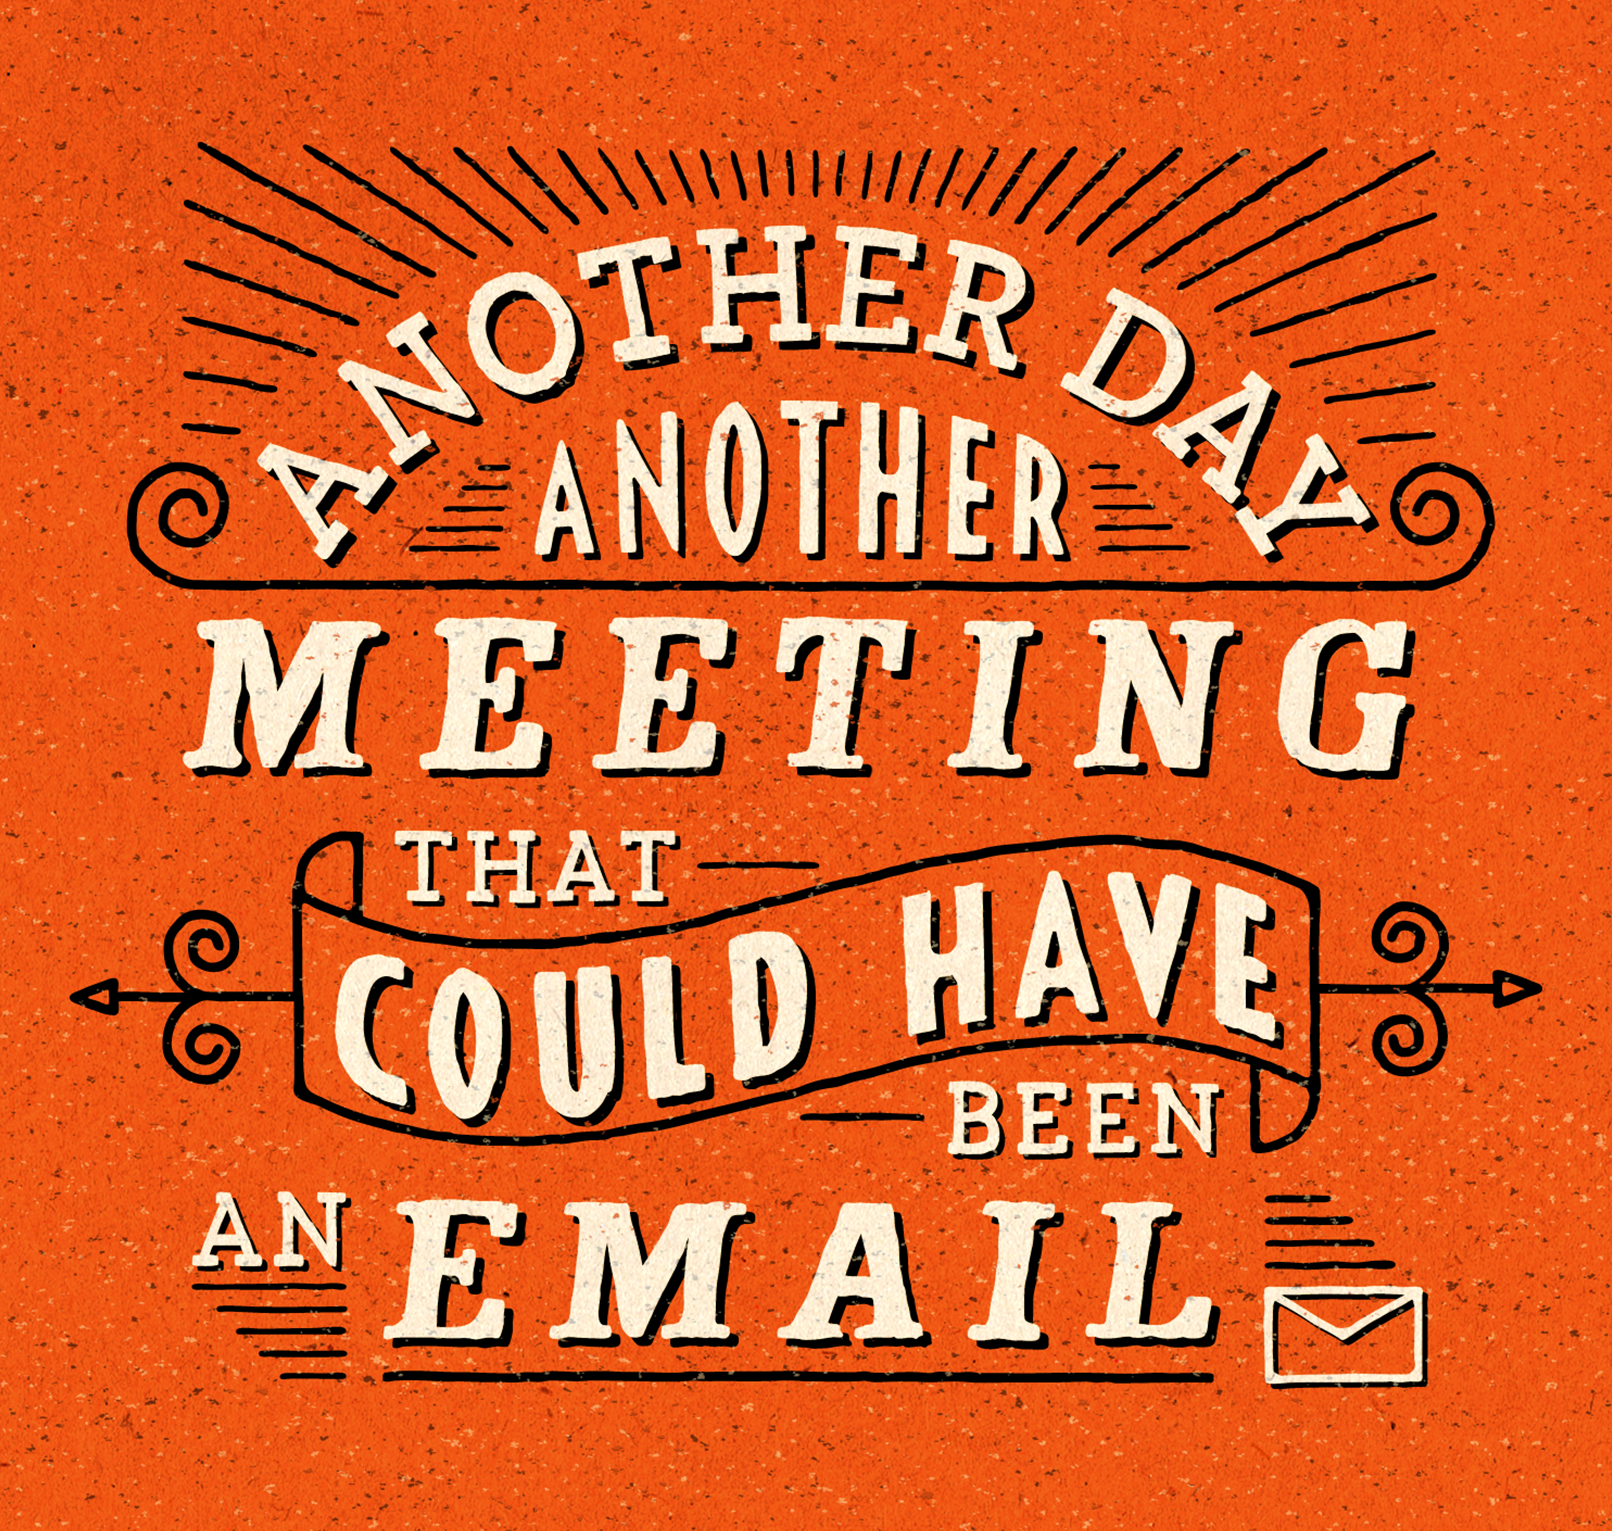 sam broom hand lettering graphic design illustration meeting email